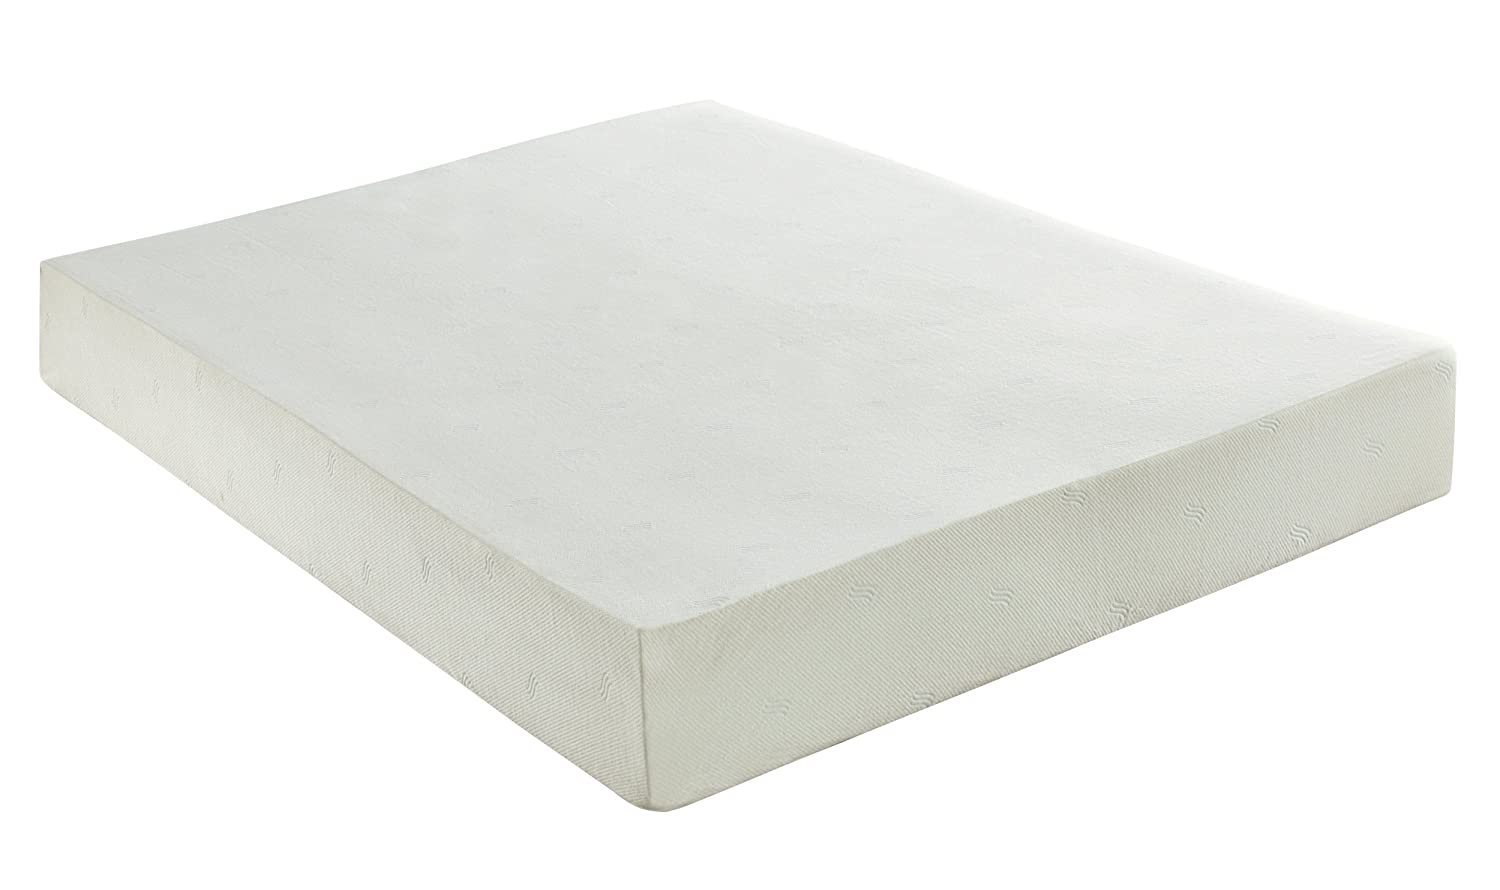 Top 10 Best Memory Foam Mattress (2020 Review & Buying Guide) 3